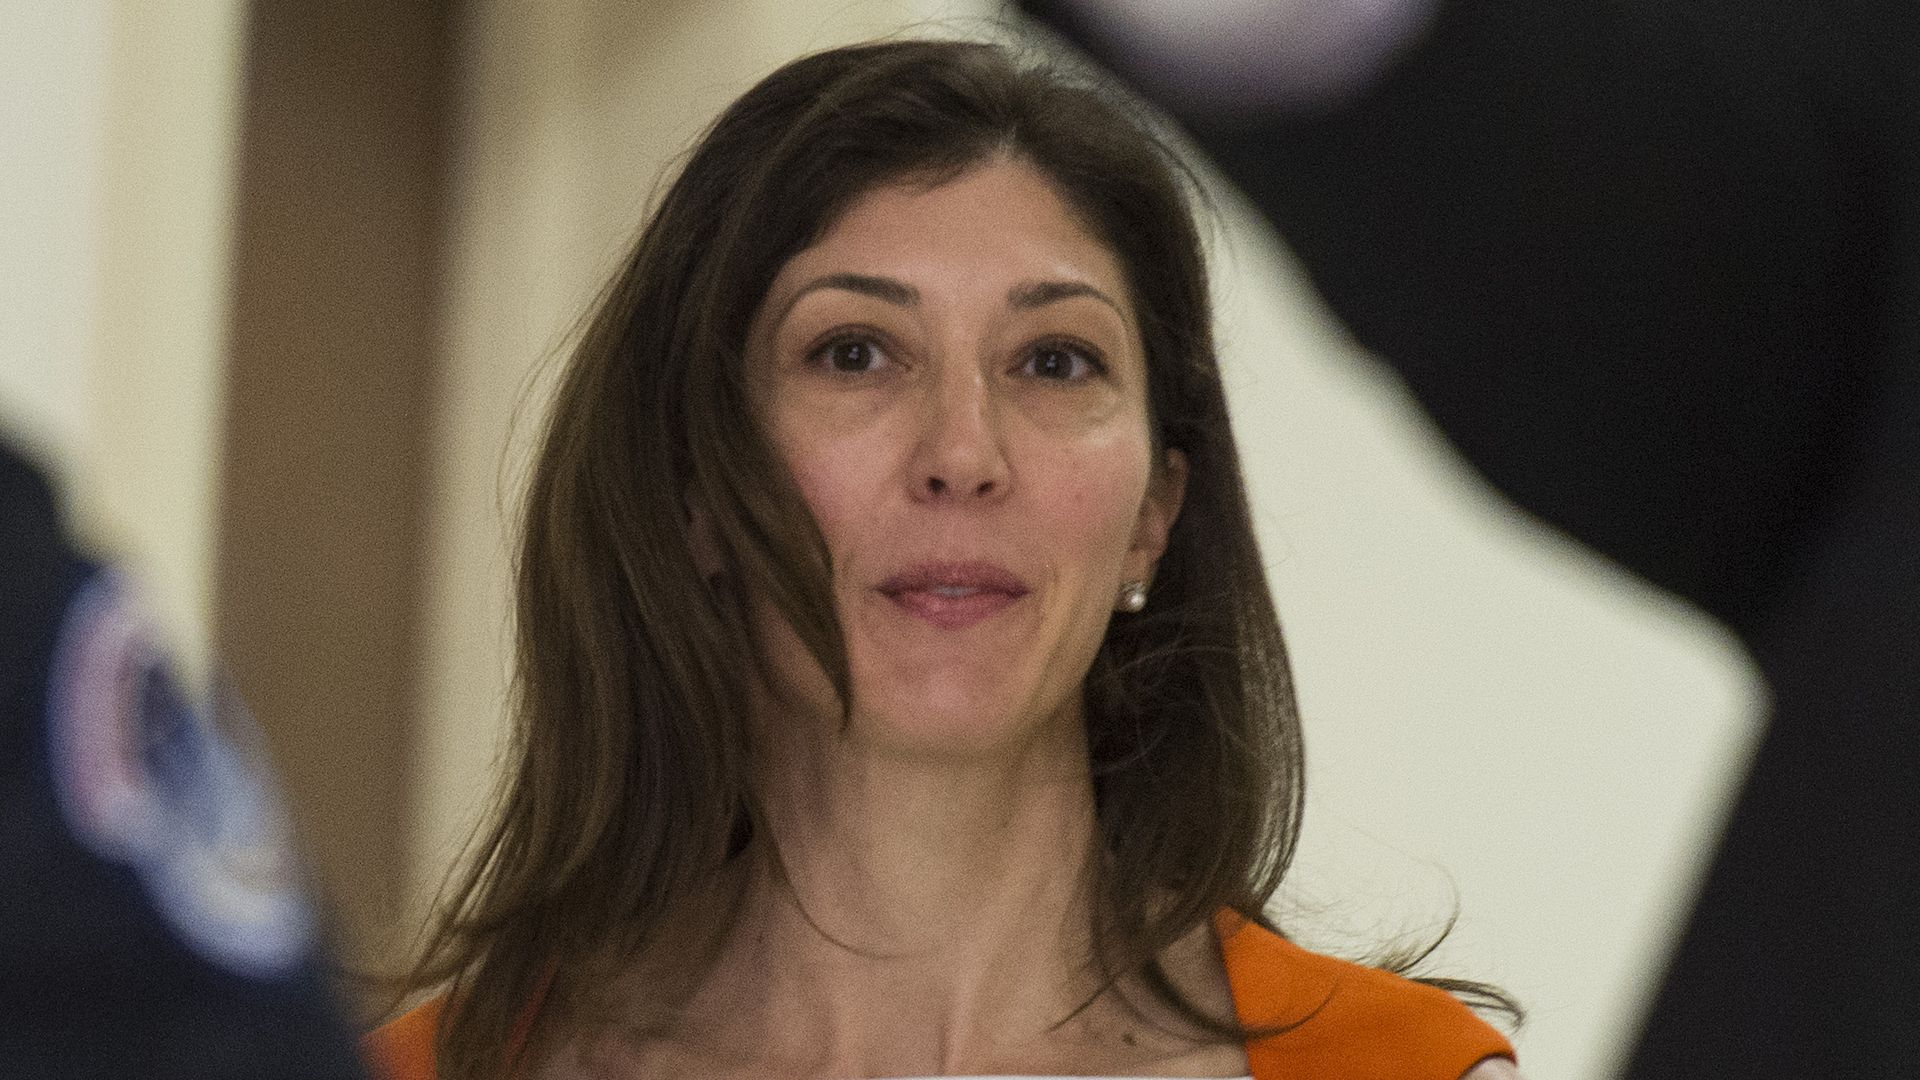 Lisa Page, former legal counsel to former FBI Director Andrew Mc Cabe, arrives on Capitol Hill July 16, 2018